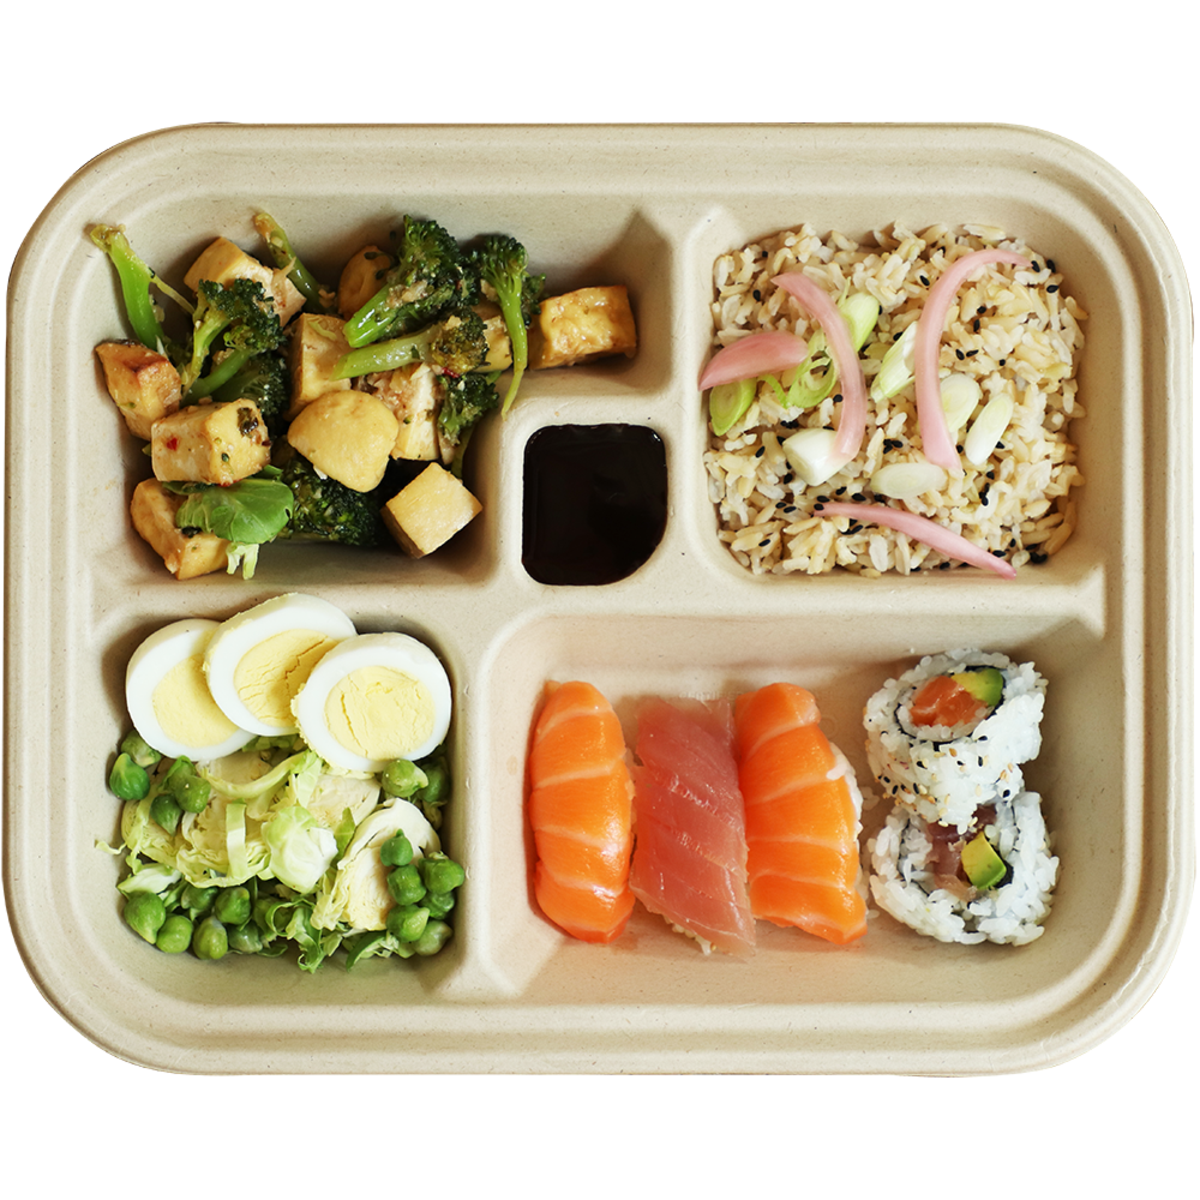 fiber five compartments compostable bento box containing sushi, rice, and vegetables.